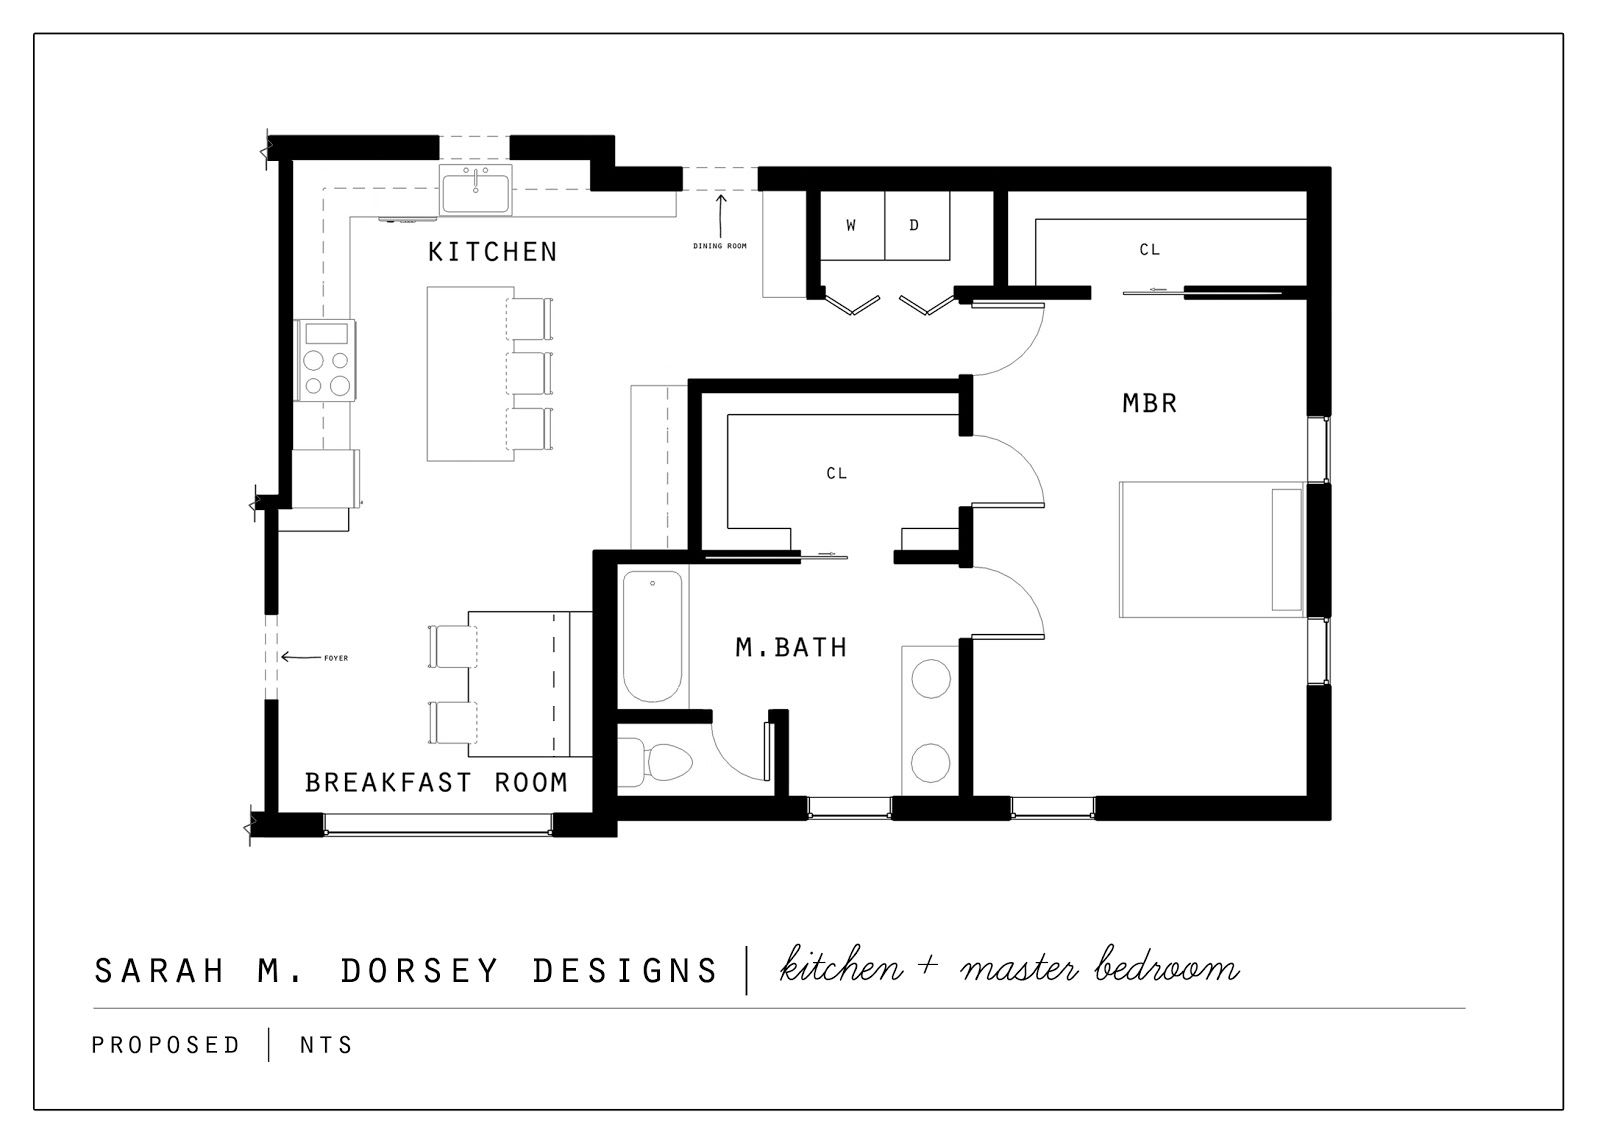 Floor plans for master bedroom additions bedroom addition plans master bedroom suite addition Master bedroom with sitting area floor plans